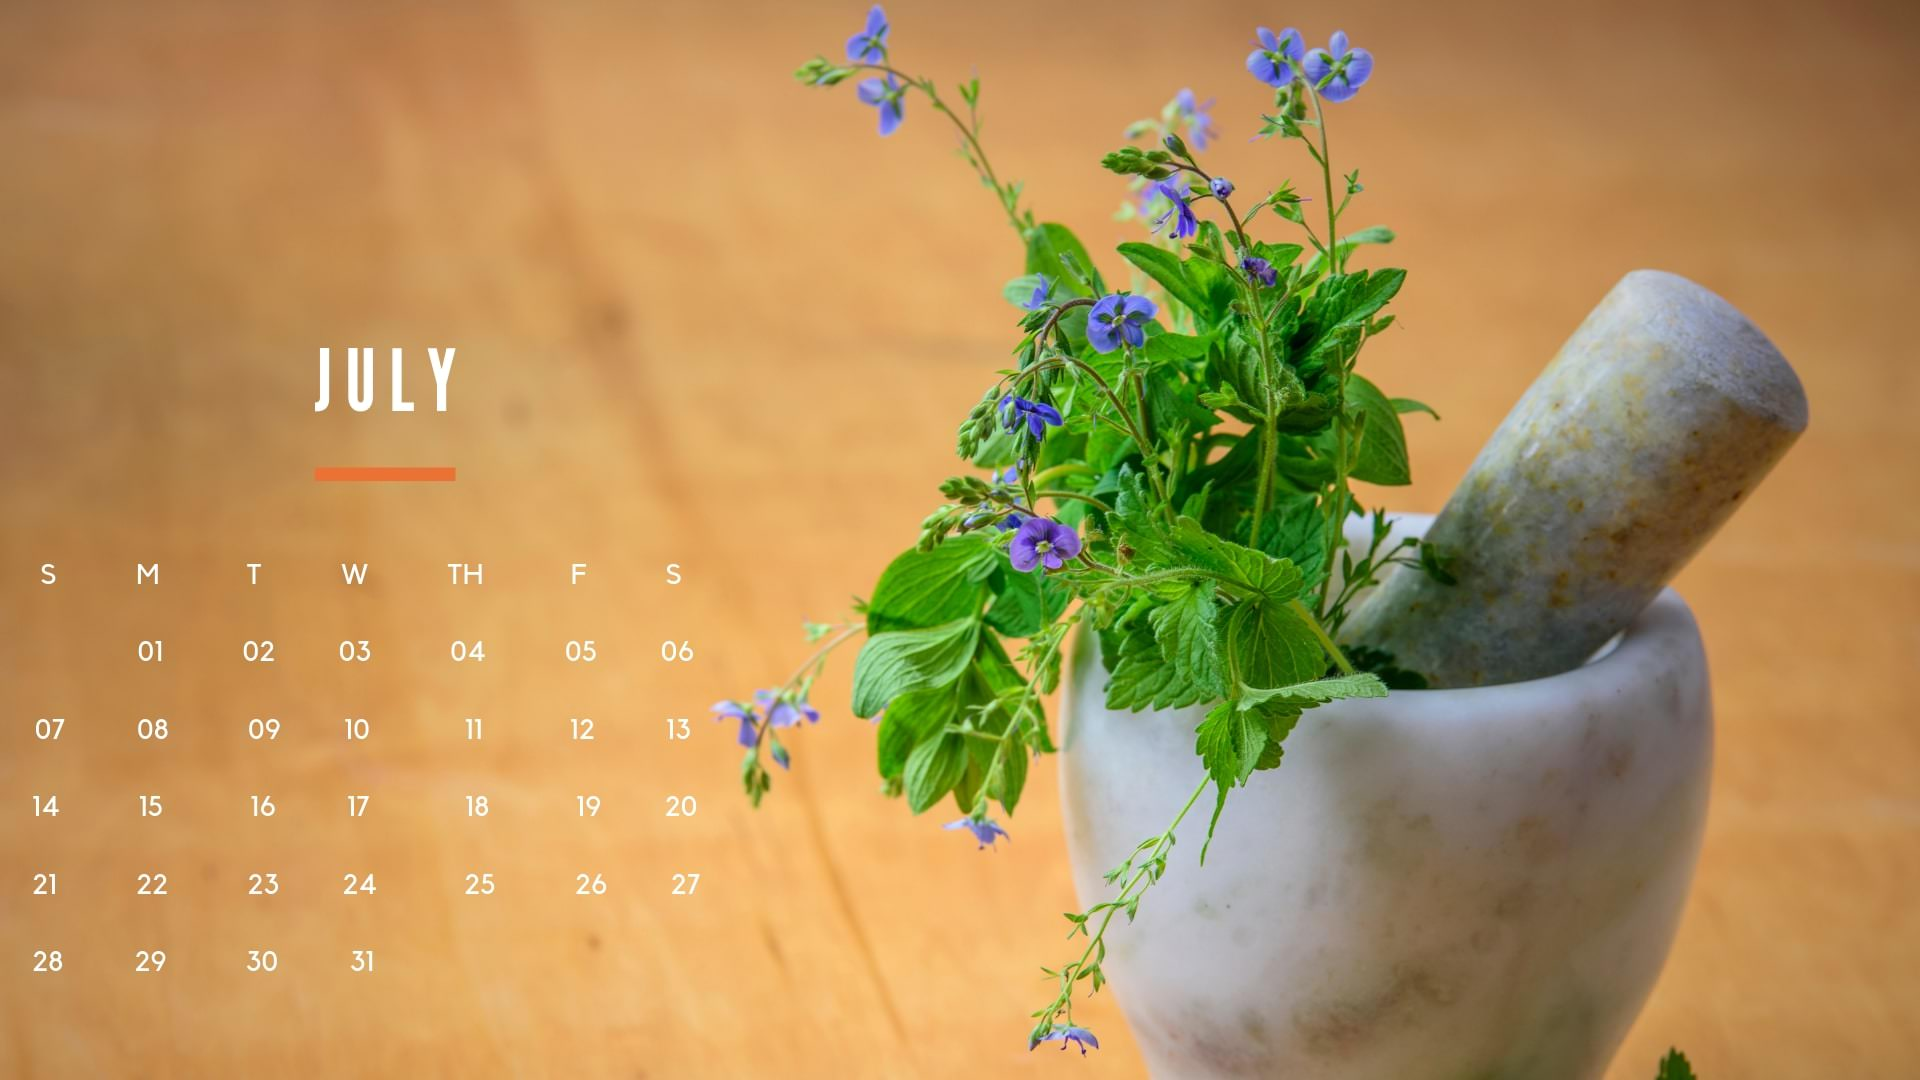 HD July 2019 Calendar Wallpaper   Album on Imgur 1920x1080